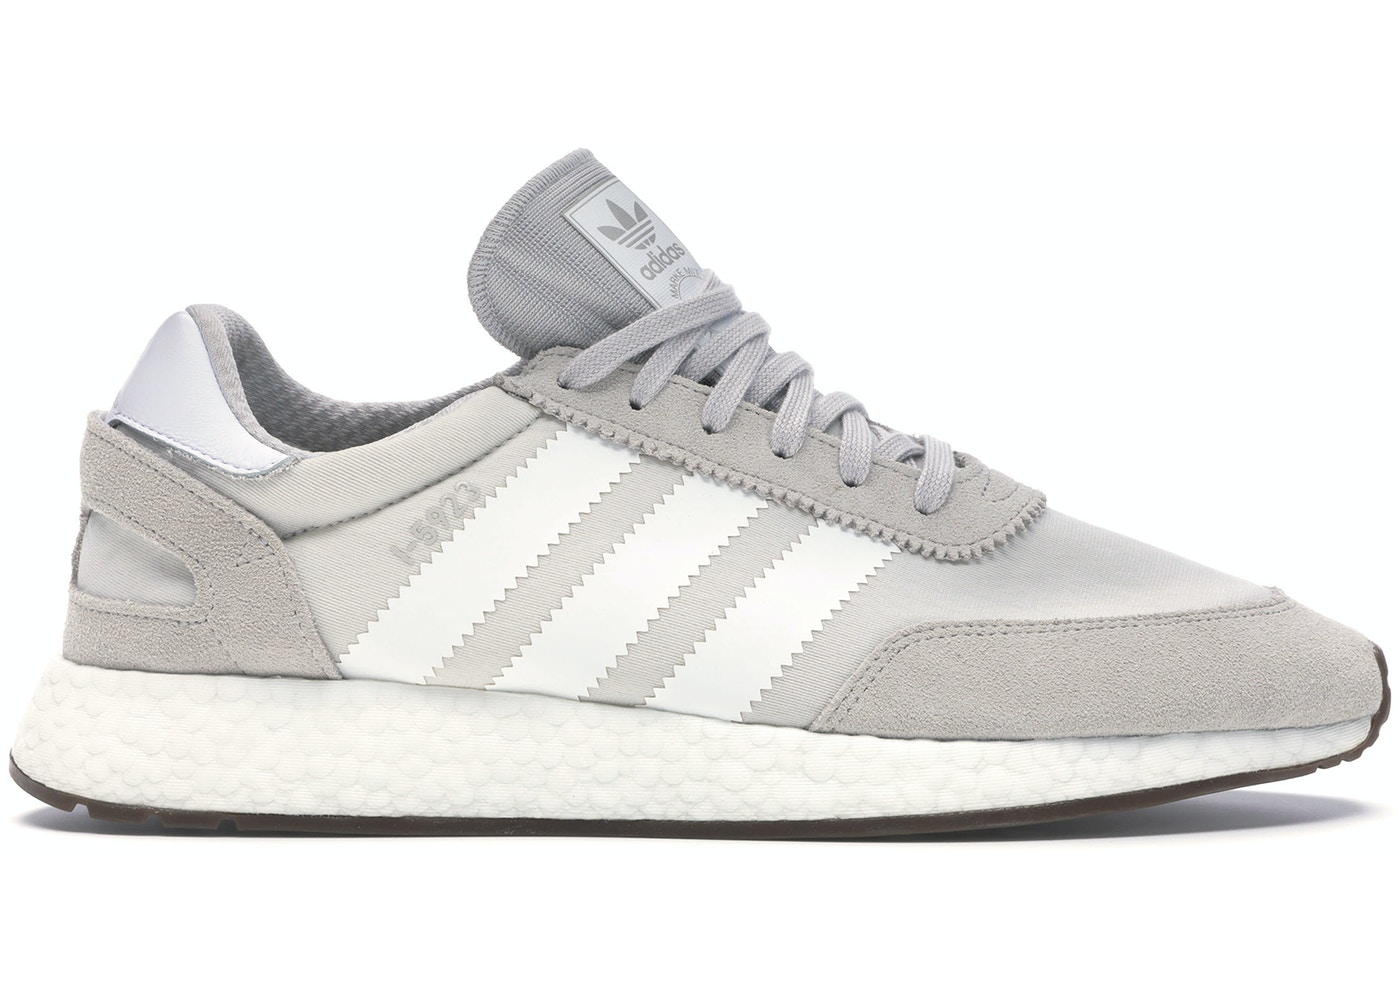 official the cheapest united states Buy adidas Iniki Shoes & Deadstock Sneakers